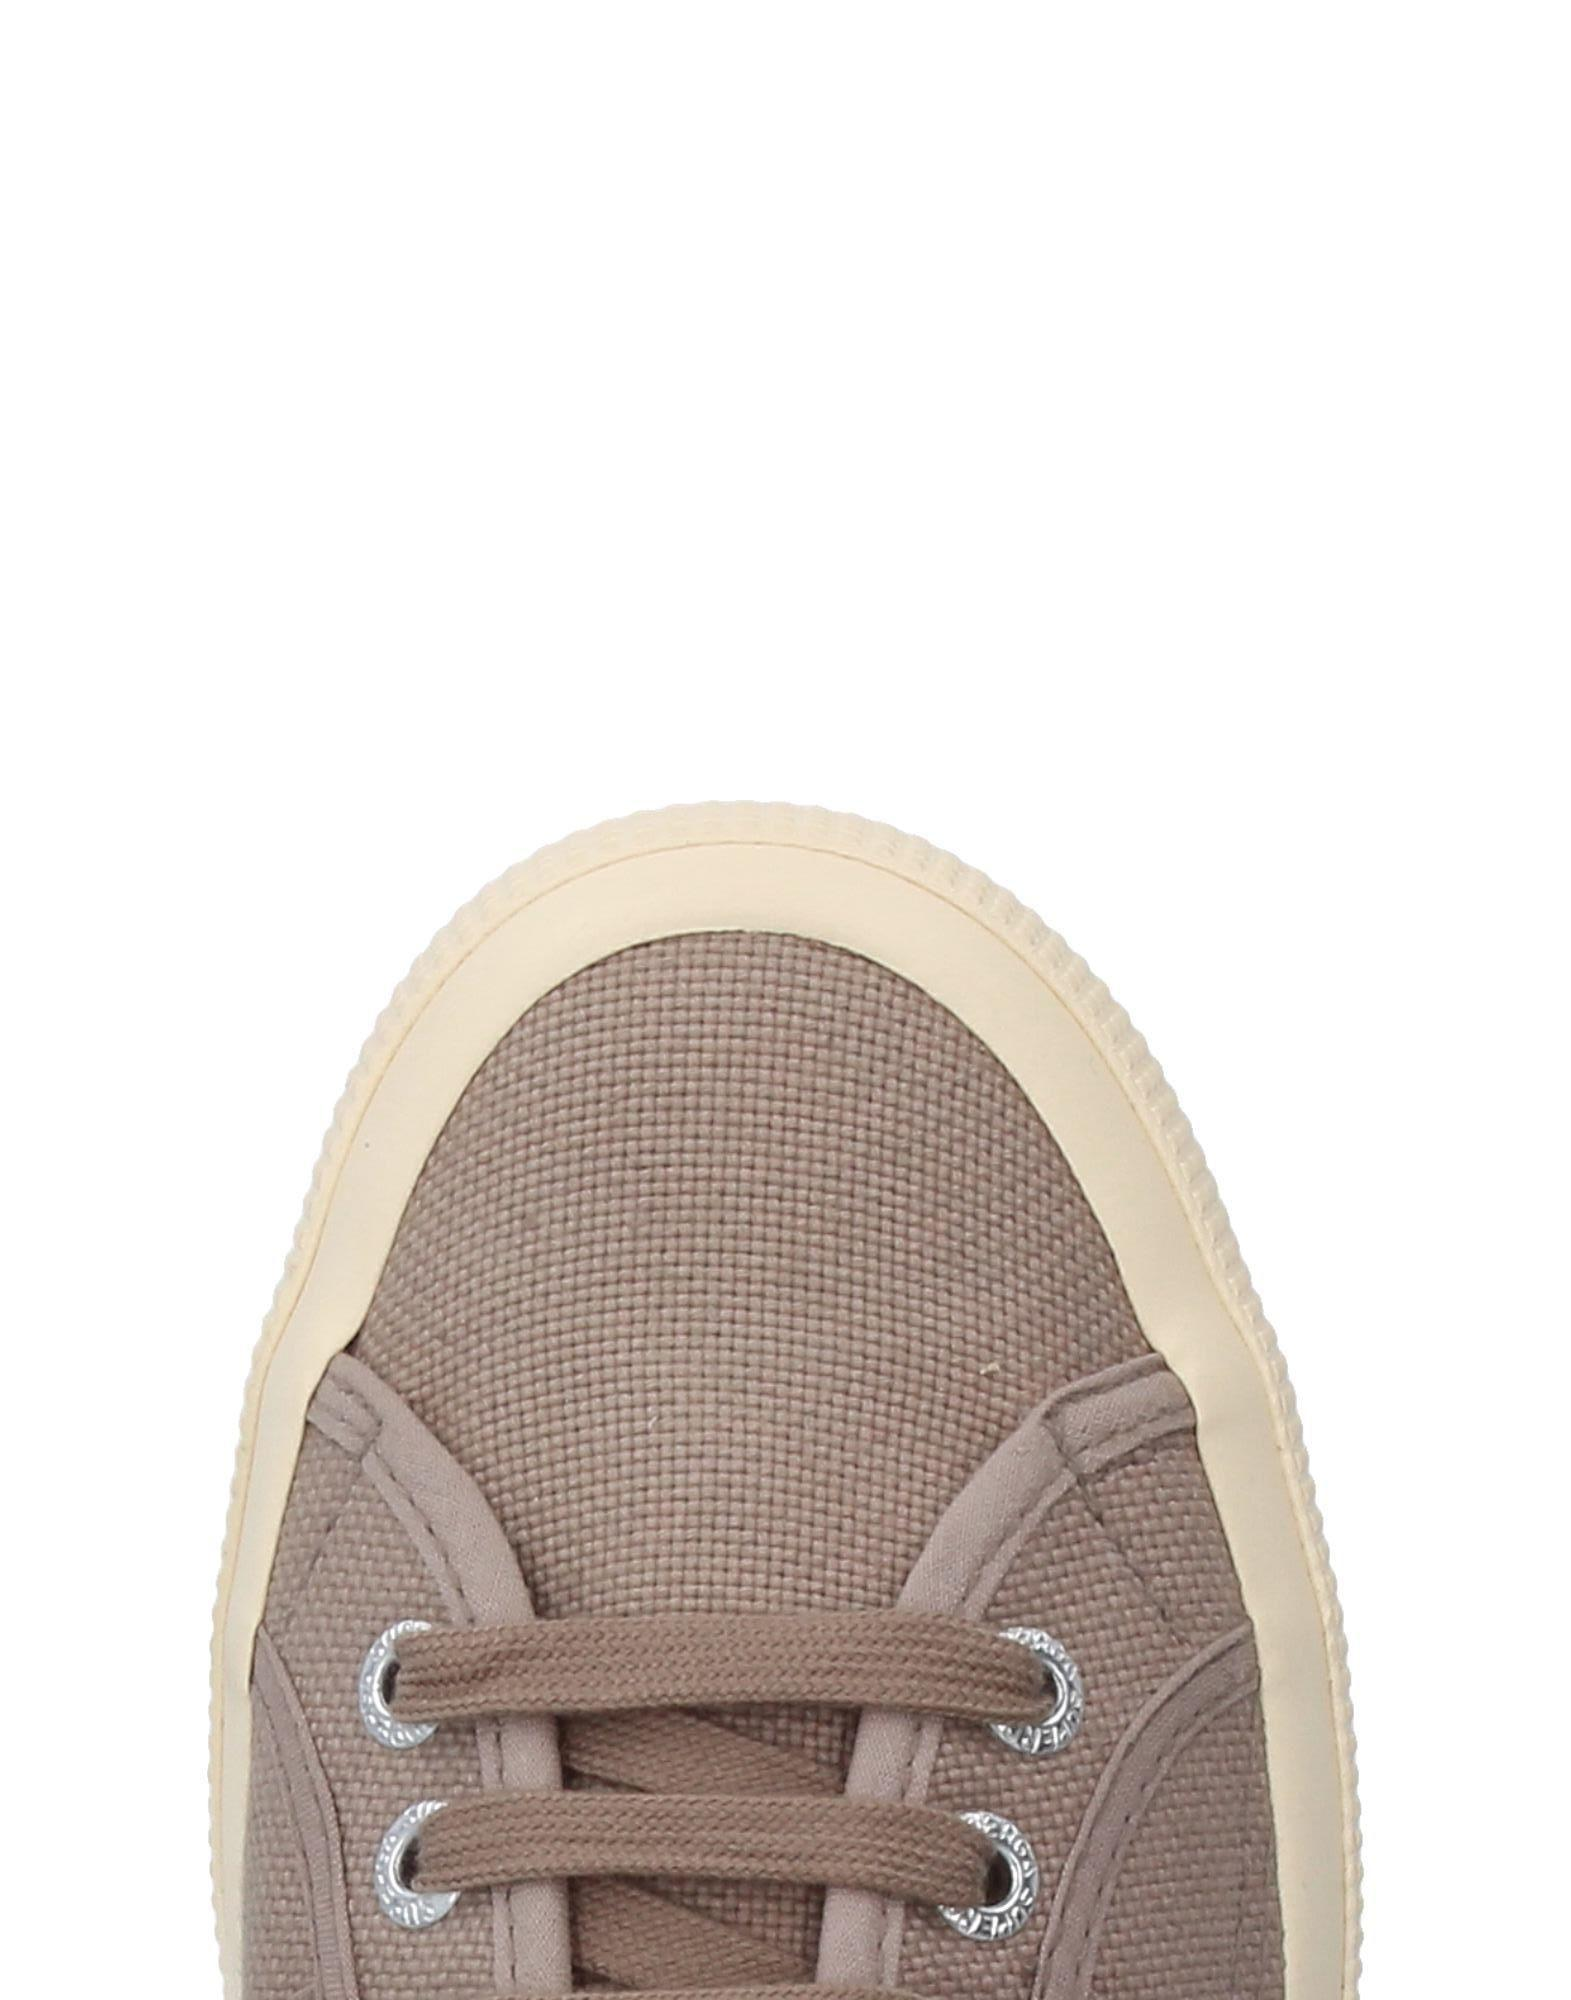 Superga Canvas Low-tops & Sneakers in Khaki (Natural)